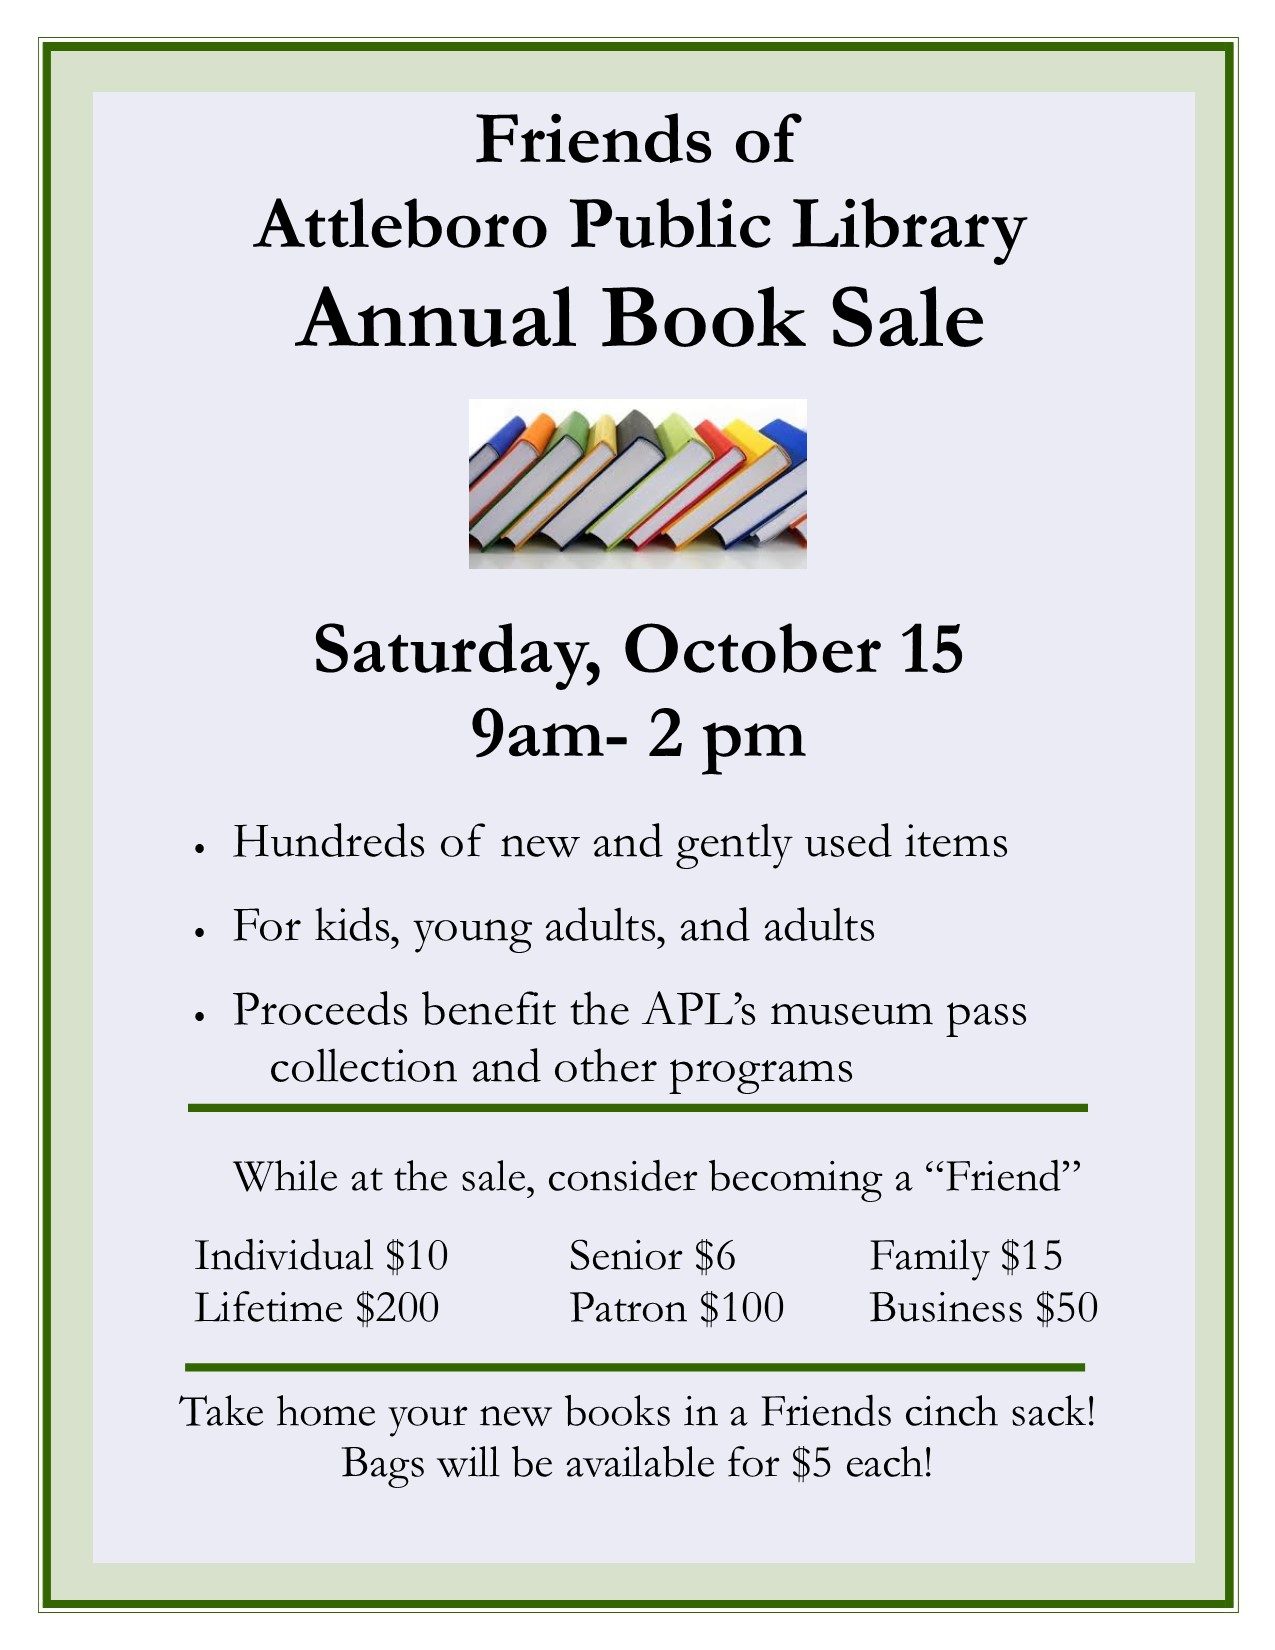 Attleboro Friends Book Sale